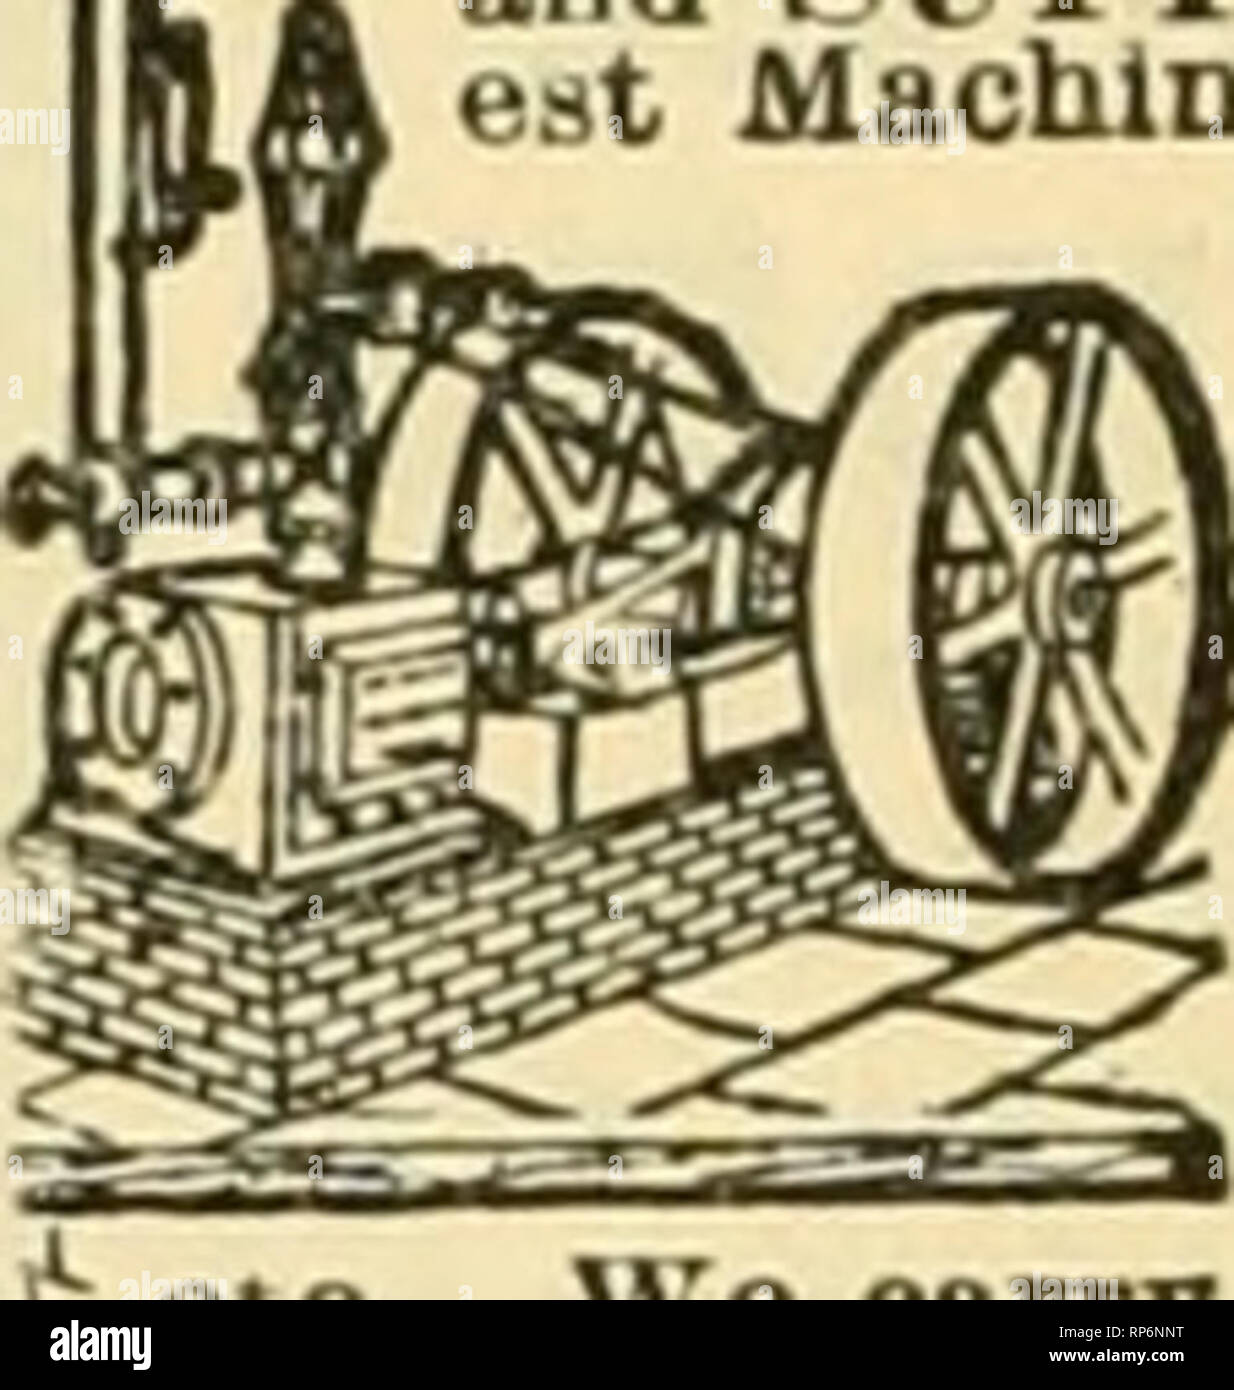 . The American florist : a weekly journal for the trade. Floriculture; Florists. REBUILT MACHINERY and SUPPLIES at Bargain Prices. Larg Machinery Depot on eanb. We buy buldmi,'S and plants, amonc others we bought the World't.  Fa r, the Omaba Eiposltion, the Iciiicatio POBt Dflice. and other I structures. SVe rebuild machin- ery of all kinds, and sell with binding guarantees. Boilers from $25 up; Engines from f35 etc. We carry t plies, snch as nEI/TINfi. v««m i IIA*j«;F.I?S, PI'tt^E.YSL^lROJ' ?^ PlI'F. IRON K<»OFIN<5,HARD WAl{F%VAI-VES&FITTINt;S. PHiniBING MATERIAL, etc. Will p.-n. - Stock Image